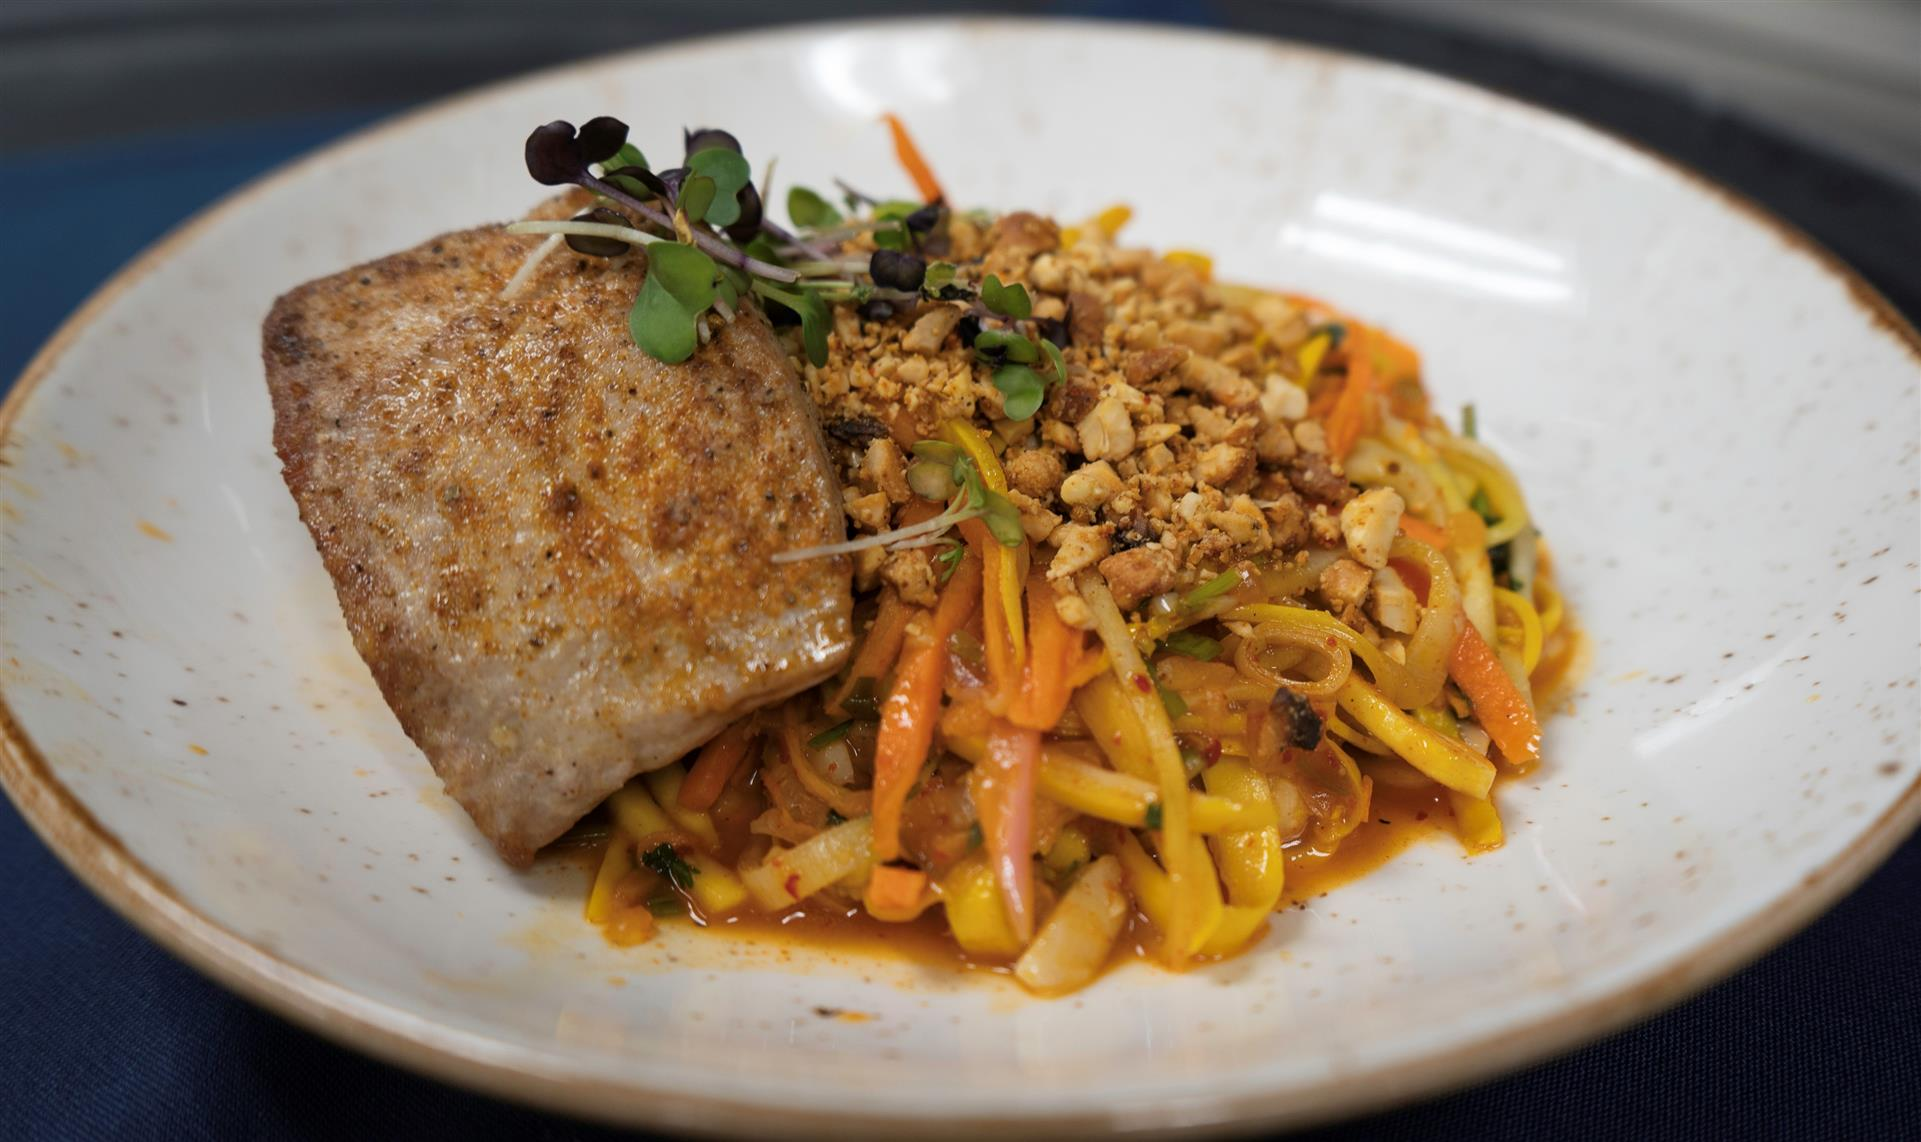 fish with linguine, mixed vegetables, and nuts